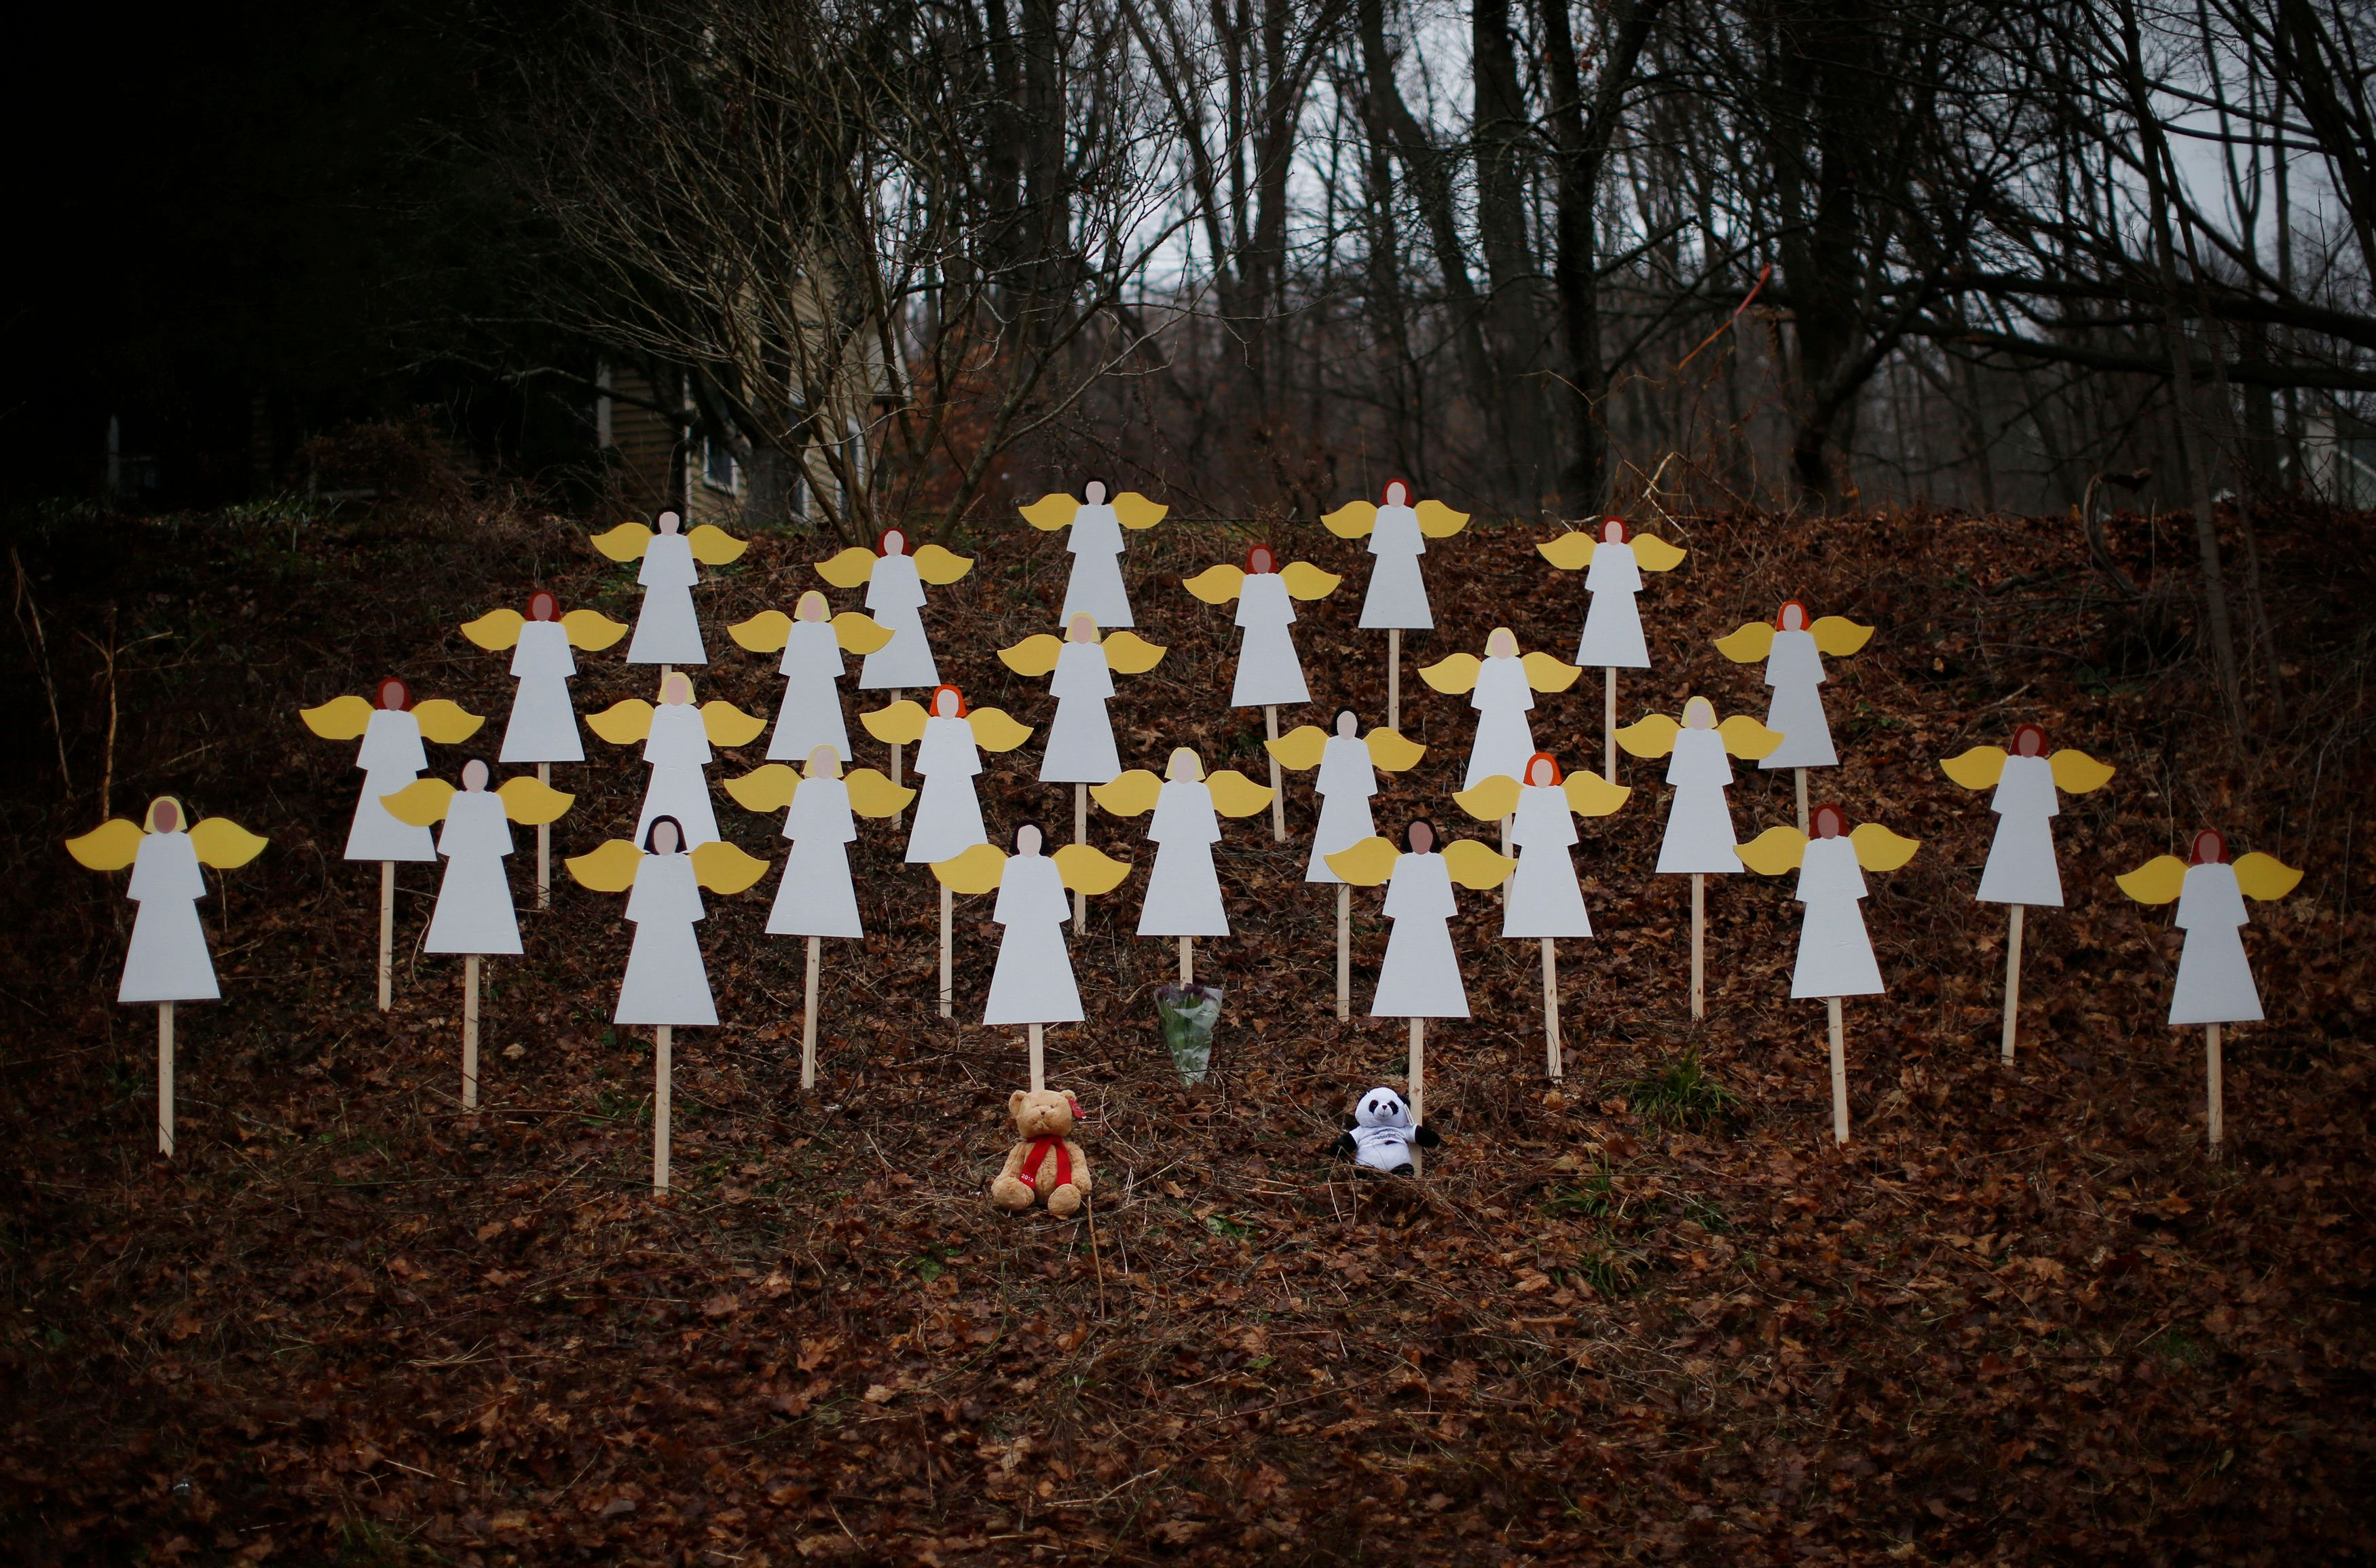 Twenty-seven angel figures were placed beside a road near the Sandy Hook Elementary School in Newtown, Connecticut on Dec. 16